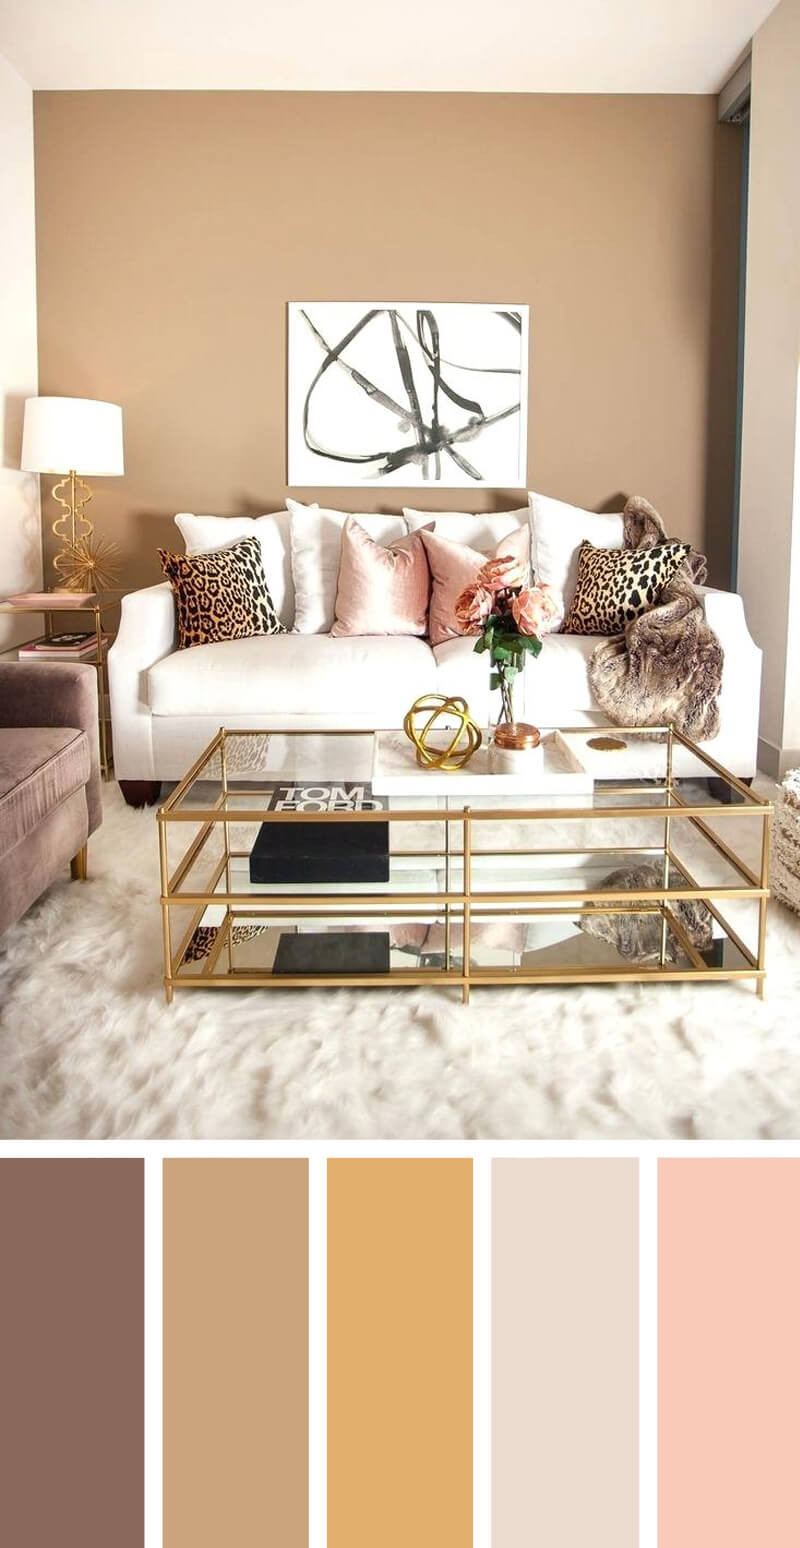 living room color schemes 11 Best Living Room Color Scheme Ideas and Designs for 2018 living room color schemes